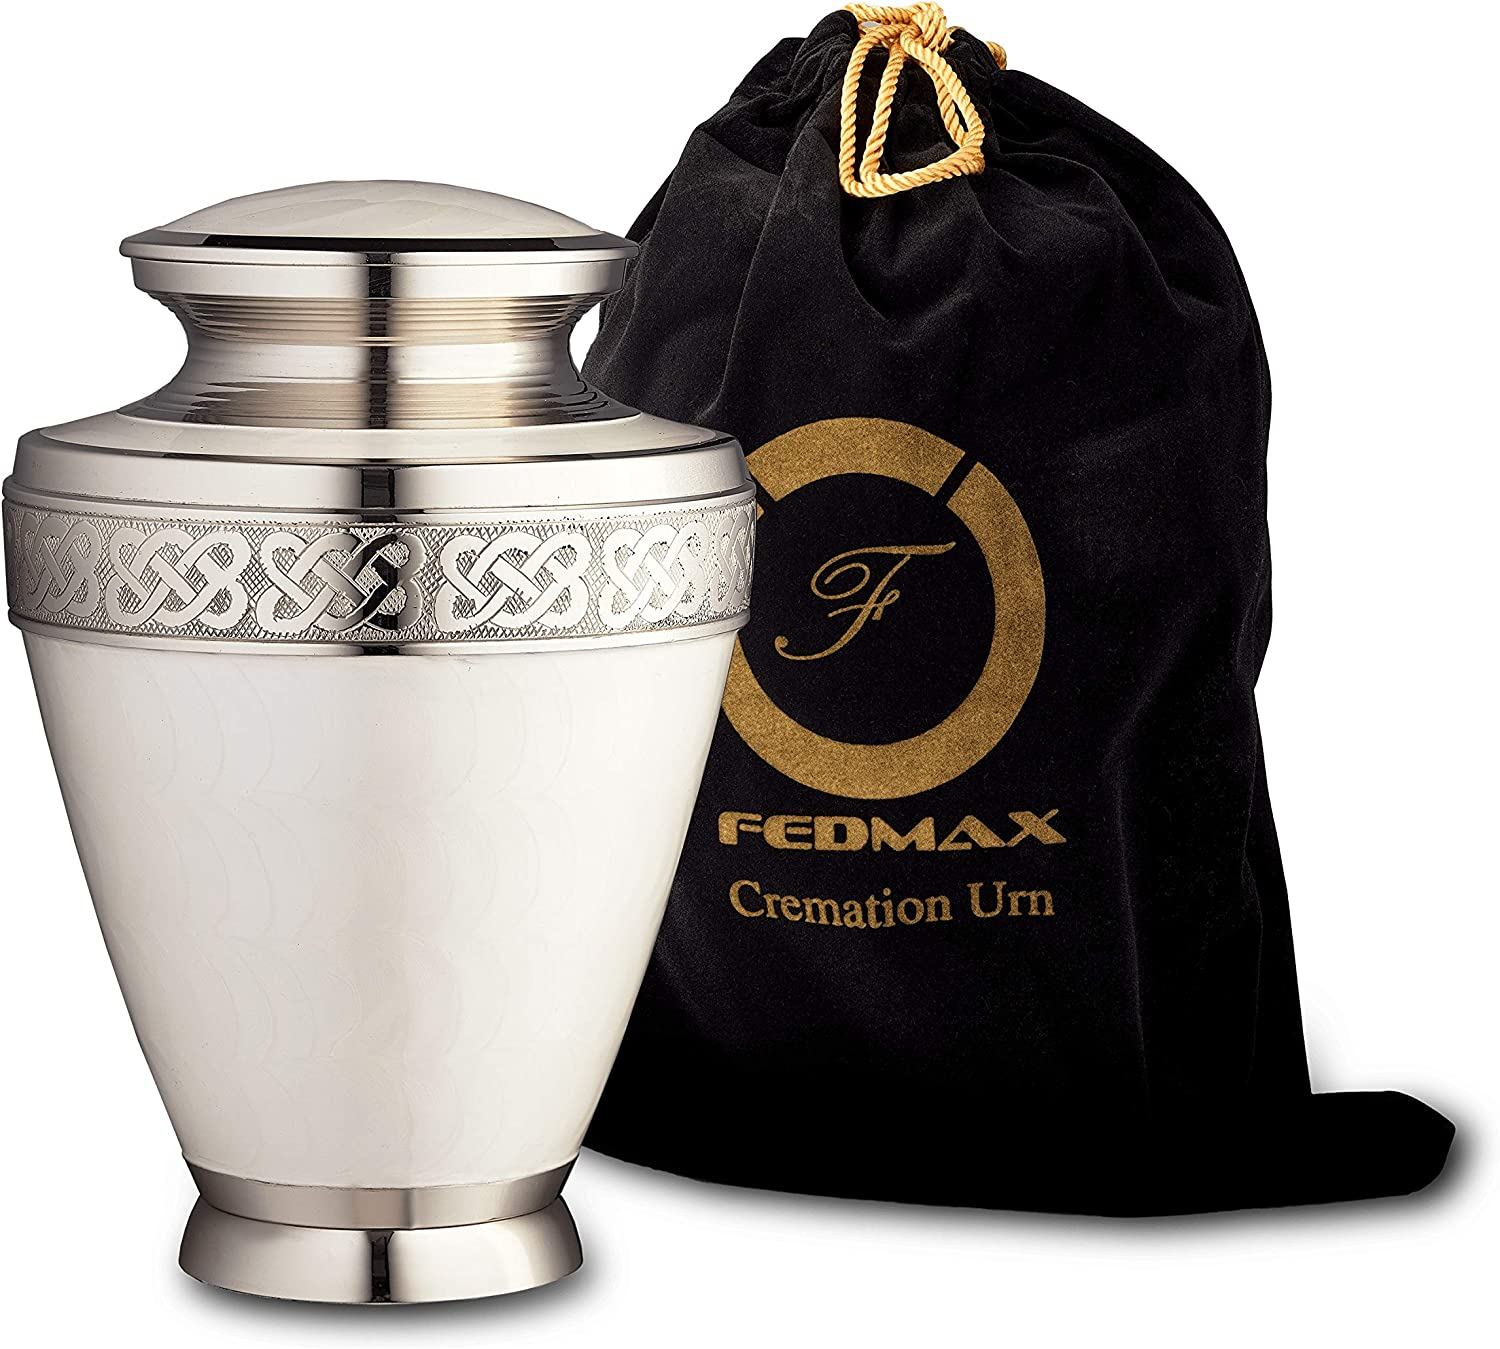 Cremation Urn for Ashes, for Adults up to 200lbs, White Funeral Burial Urns Made from Brass w/Satin Bag for Human Ashes.